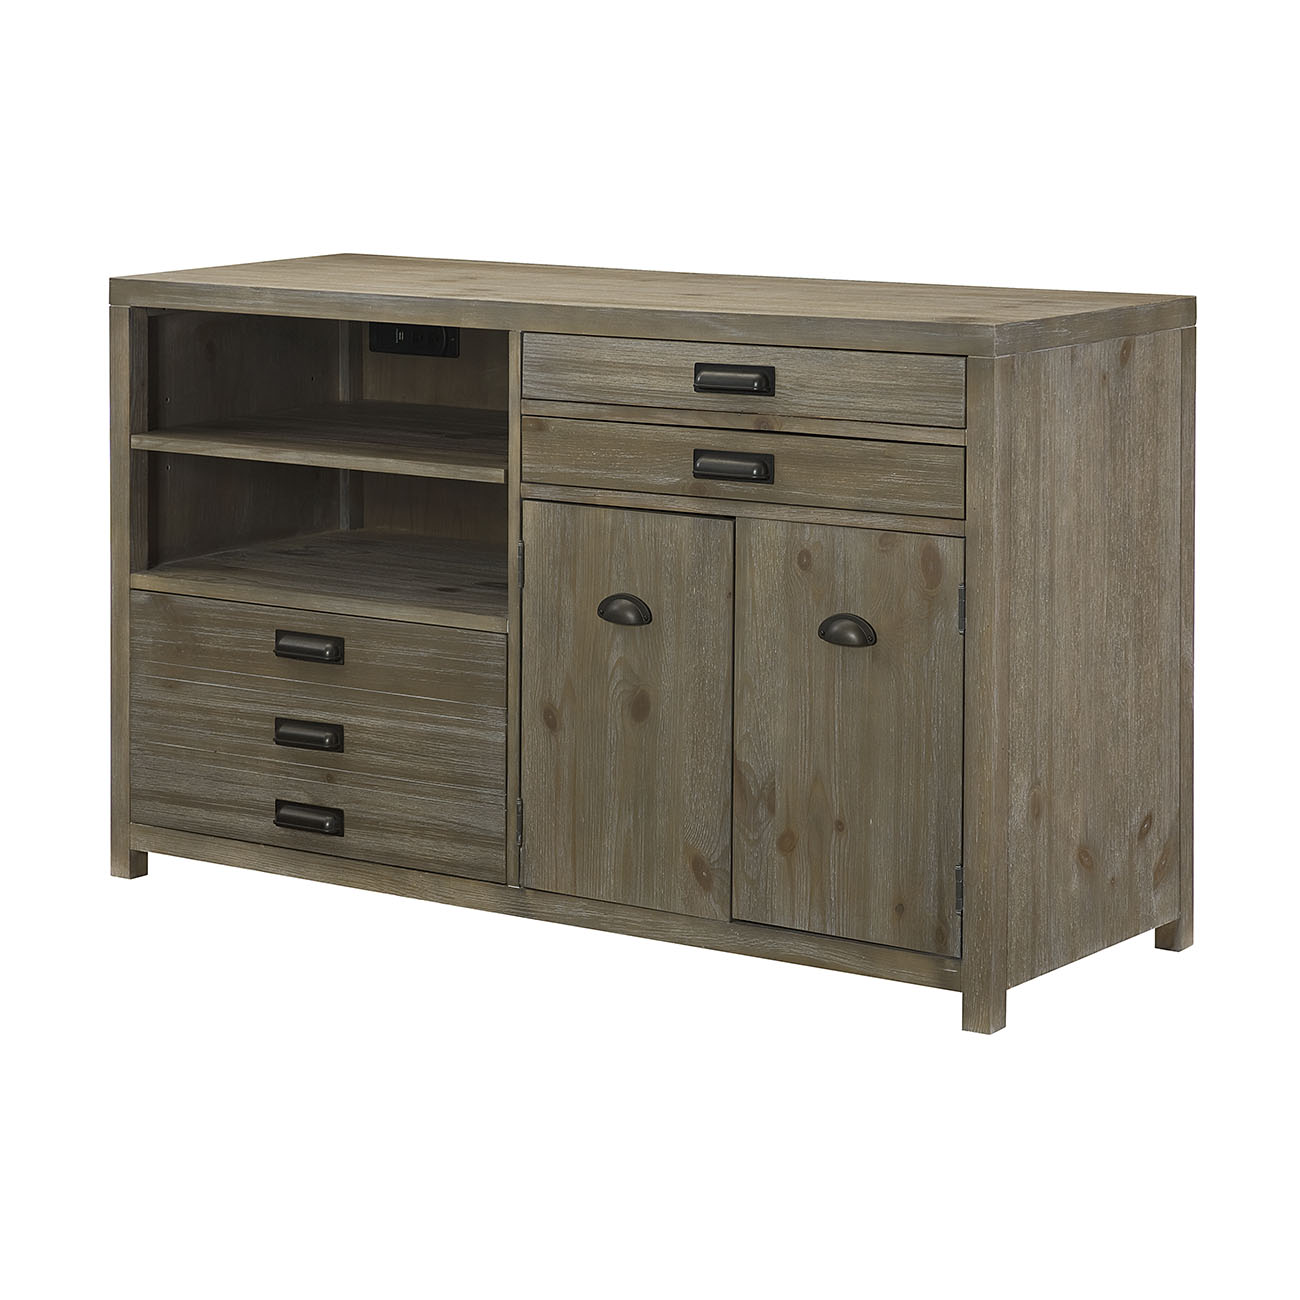 Parsons Credenza Desk by Hammary at Stoney Creek Furniture